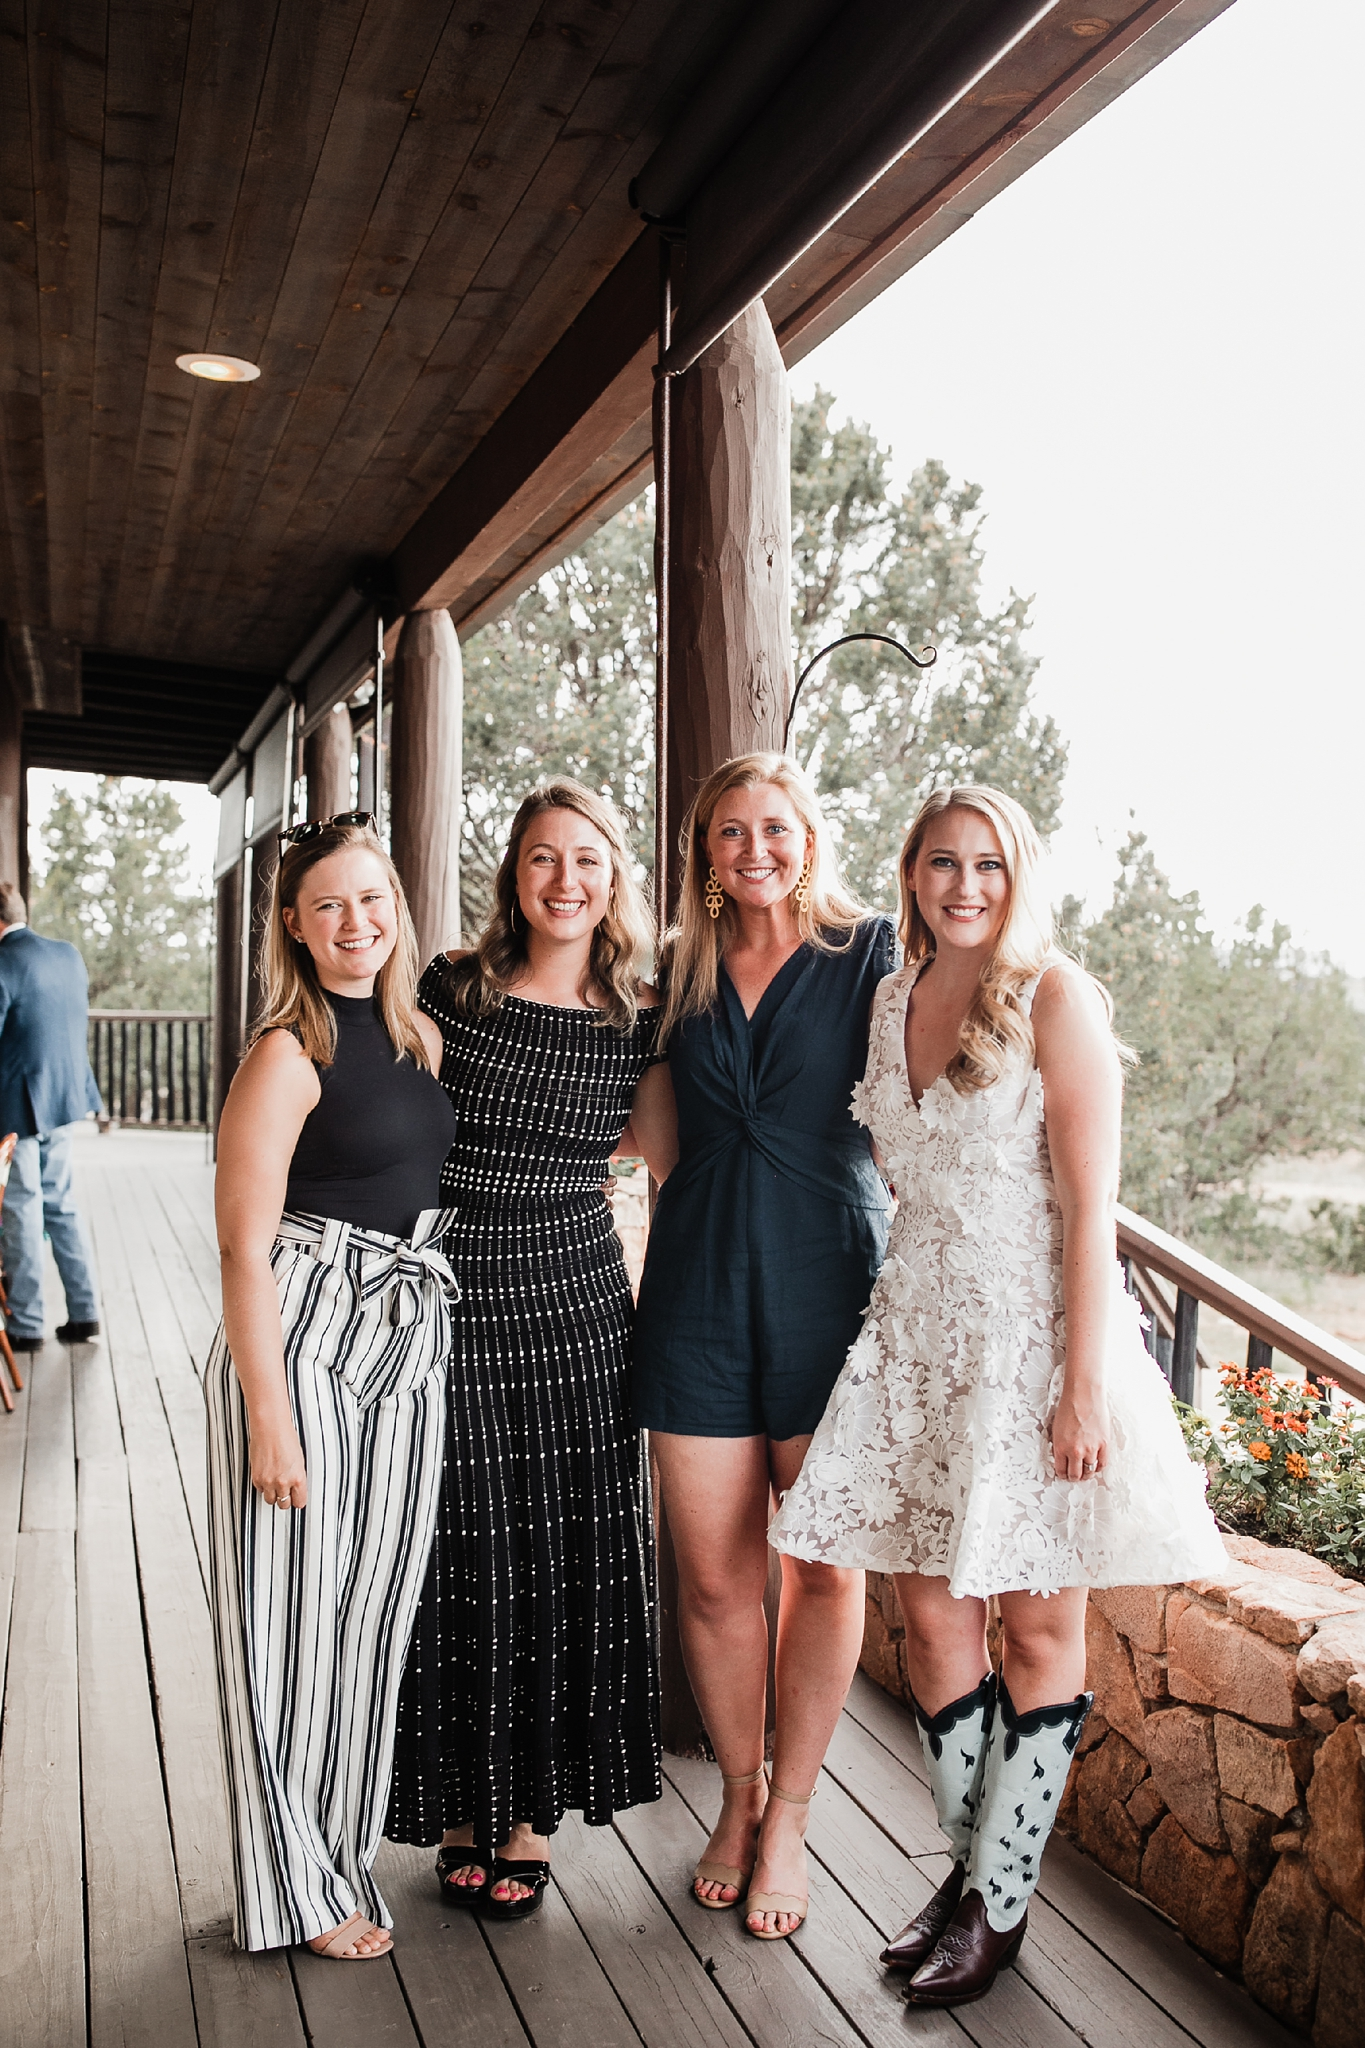 Alicia+lucia+photography+-+albuquerque+wedding+photographer+-+santa+fe+wedding+photography+-+new+mexico+wedding+photographer+-+new+mexico+wedding+-+las+campanas+wedding+-+rehearsal+dinner+-+wedding+weekend_0013.jpg